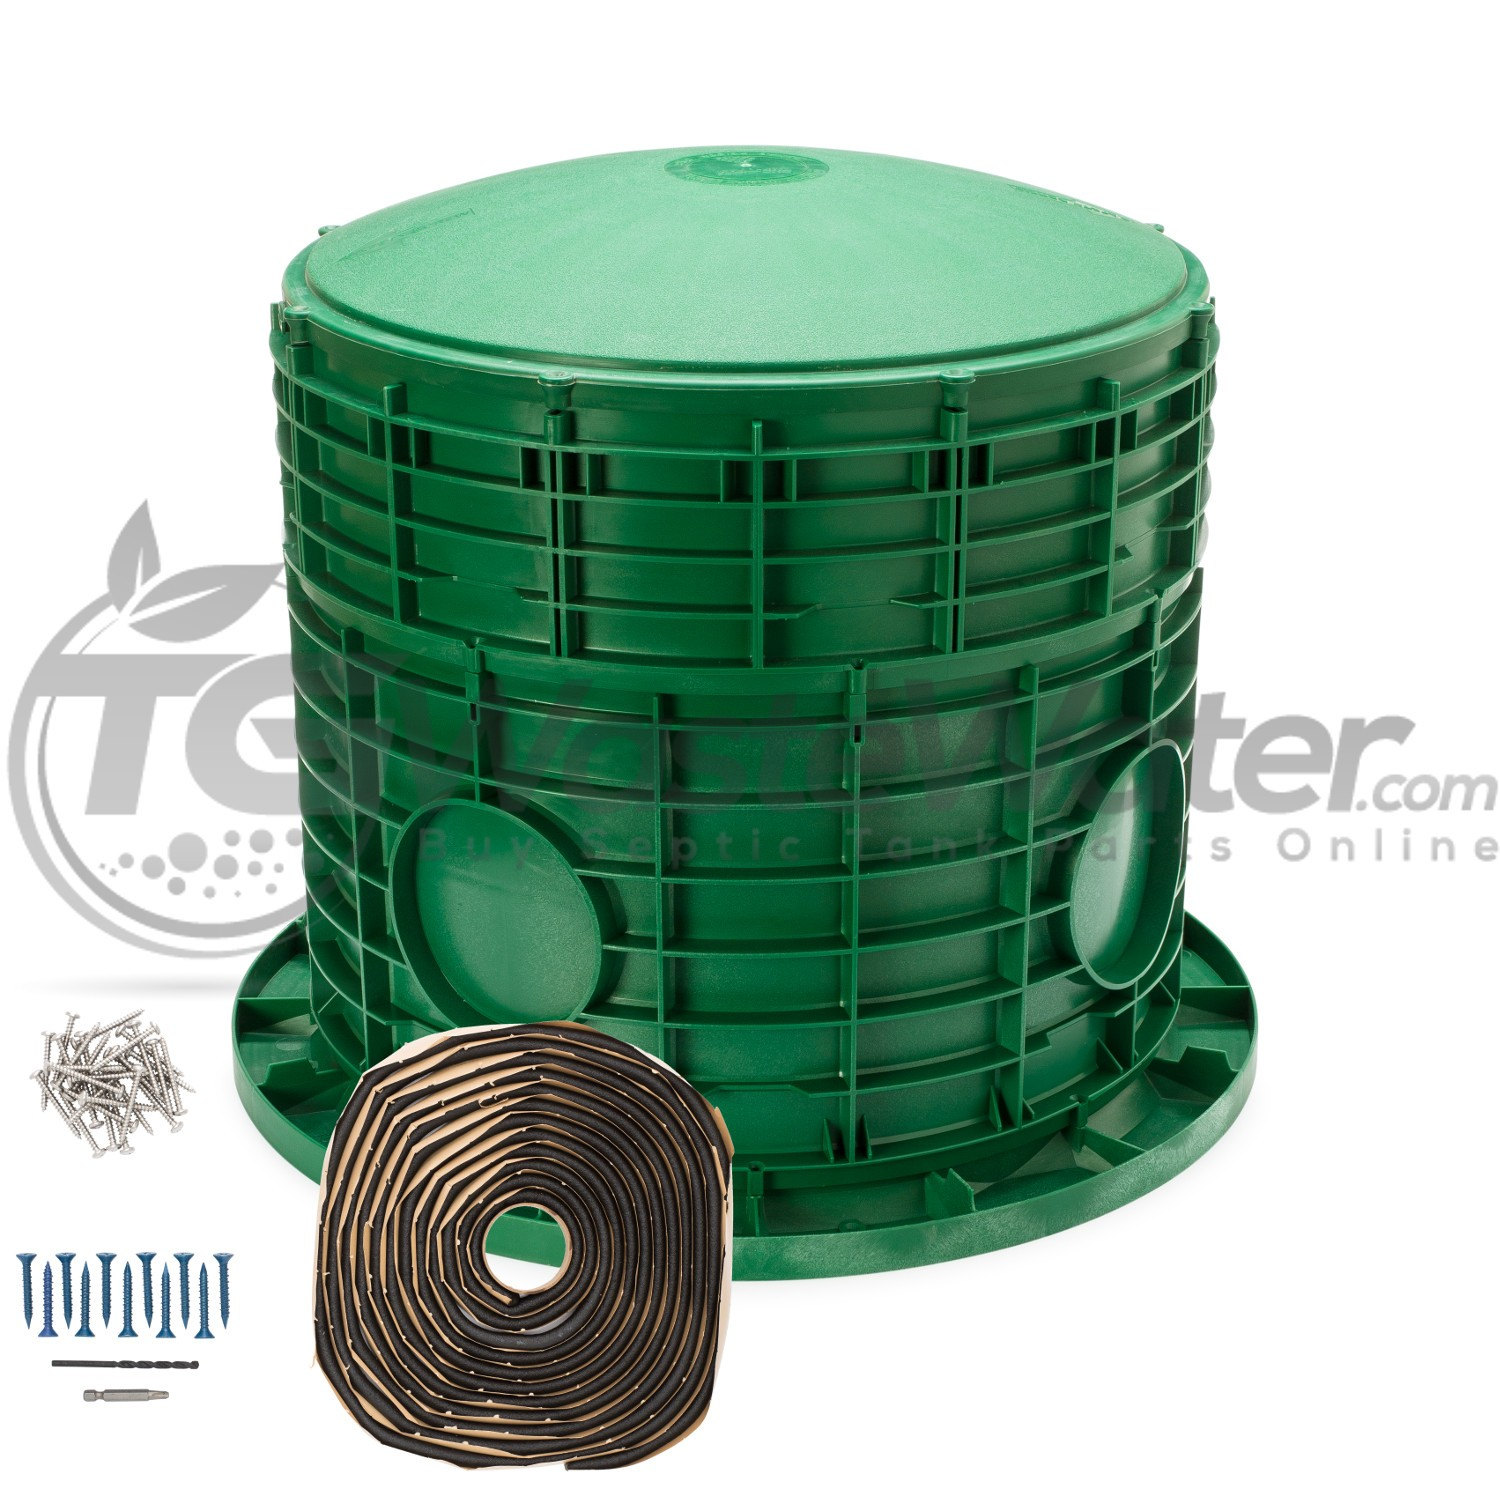 Tuf-Tite Complete Riser System (CRS) - 20x20